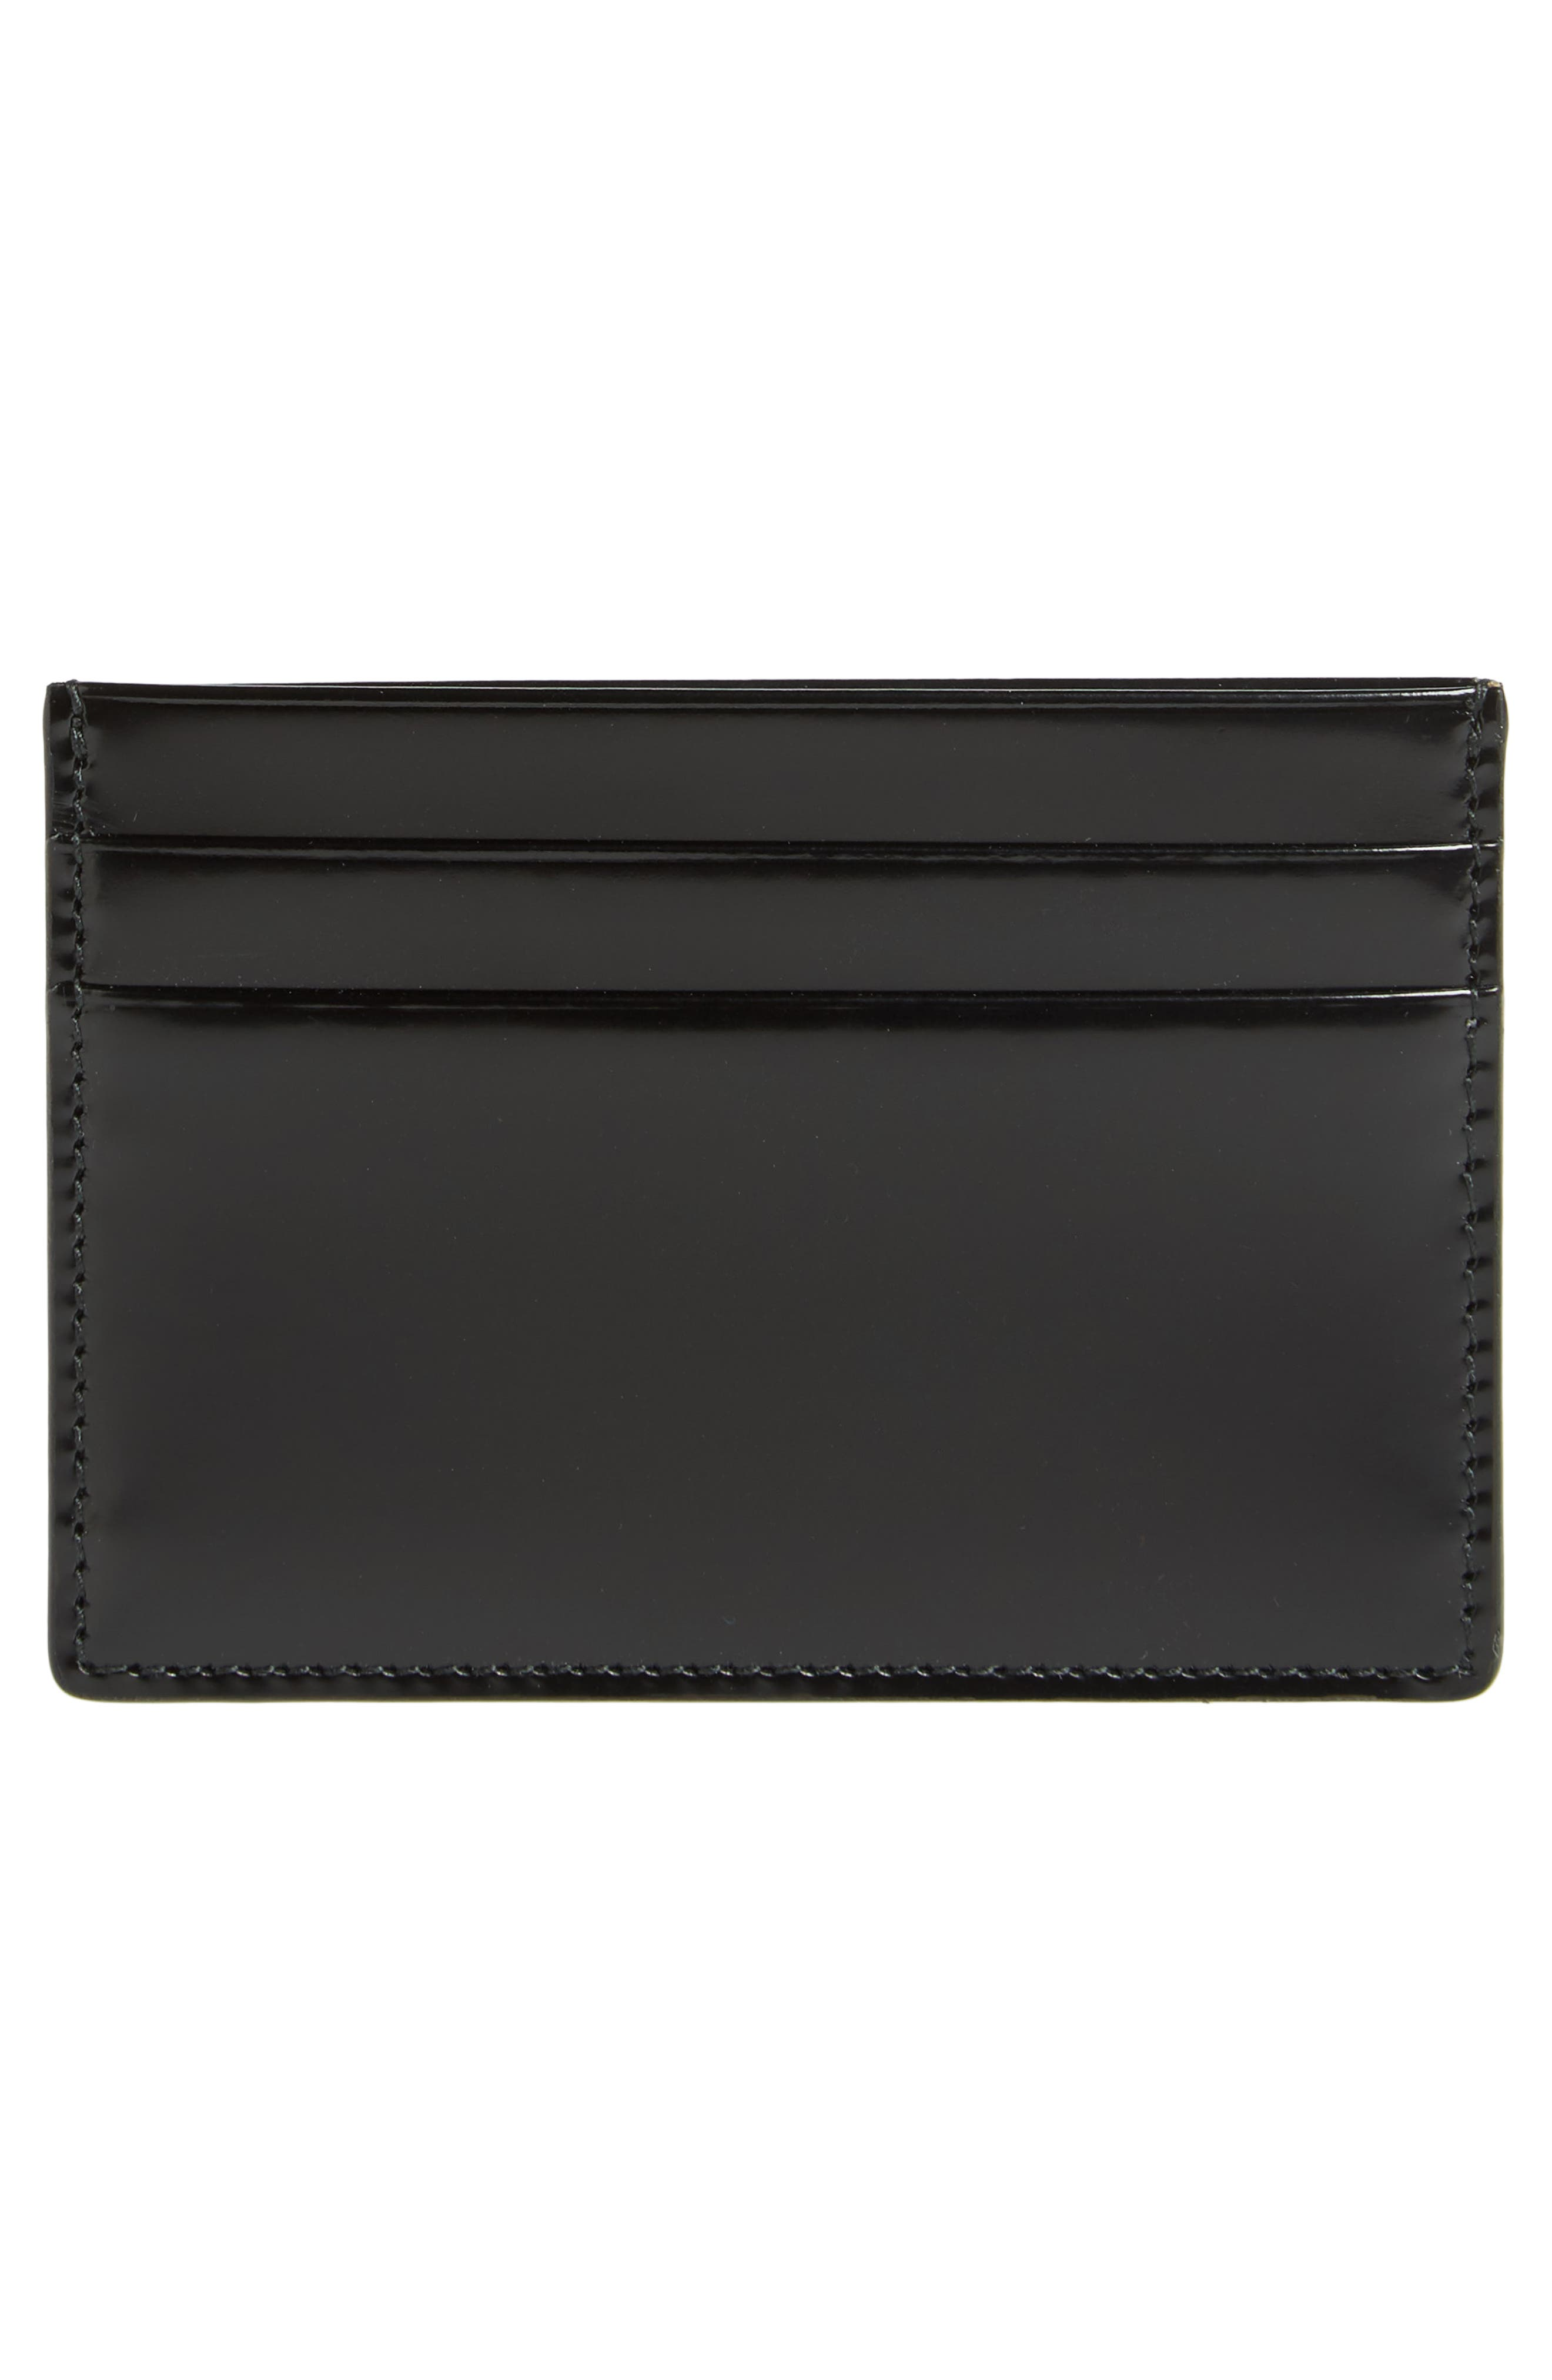 Patent Leather Card Case,                             Alternate thumbnail 2, color,                             001